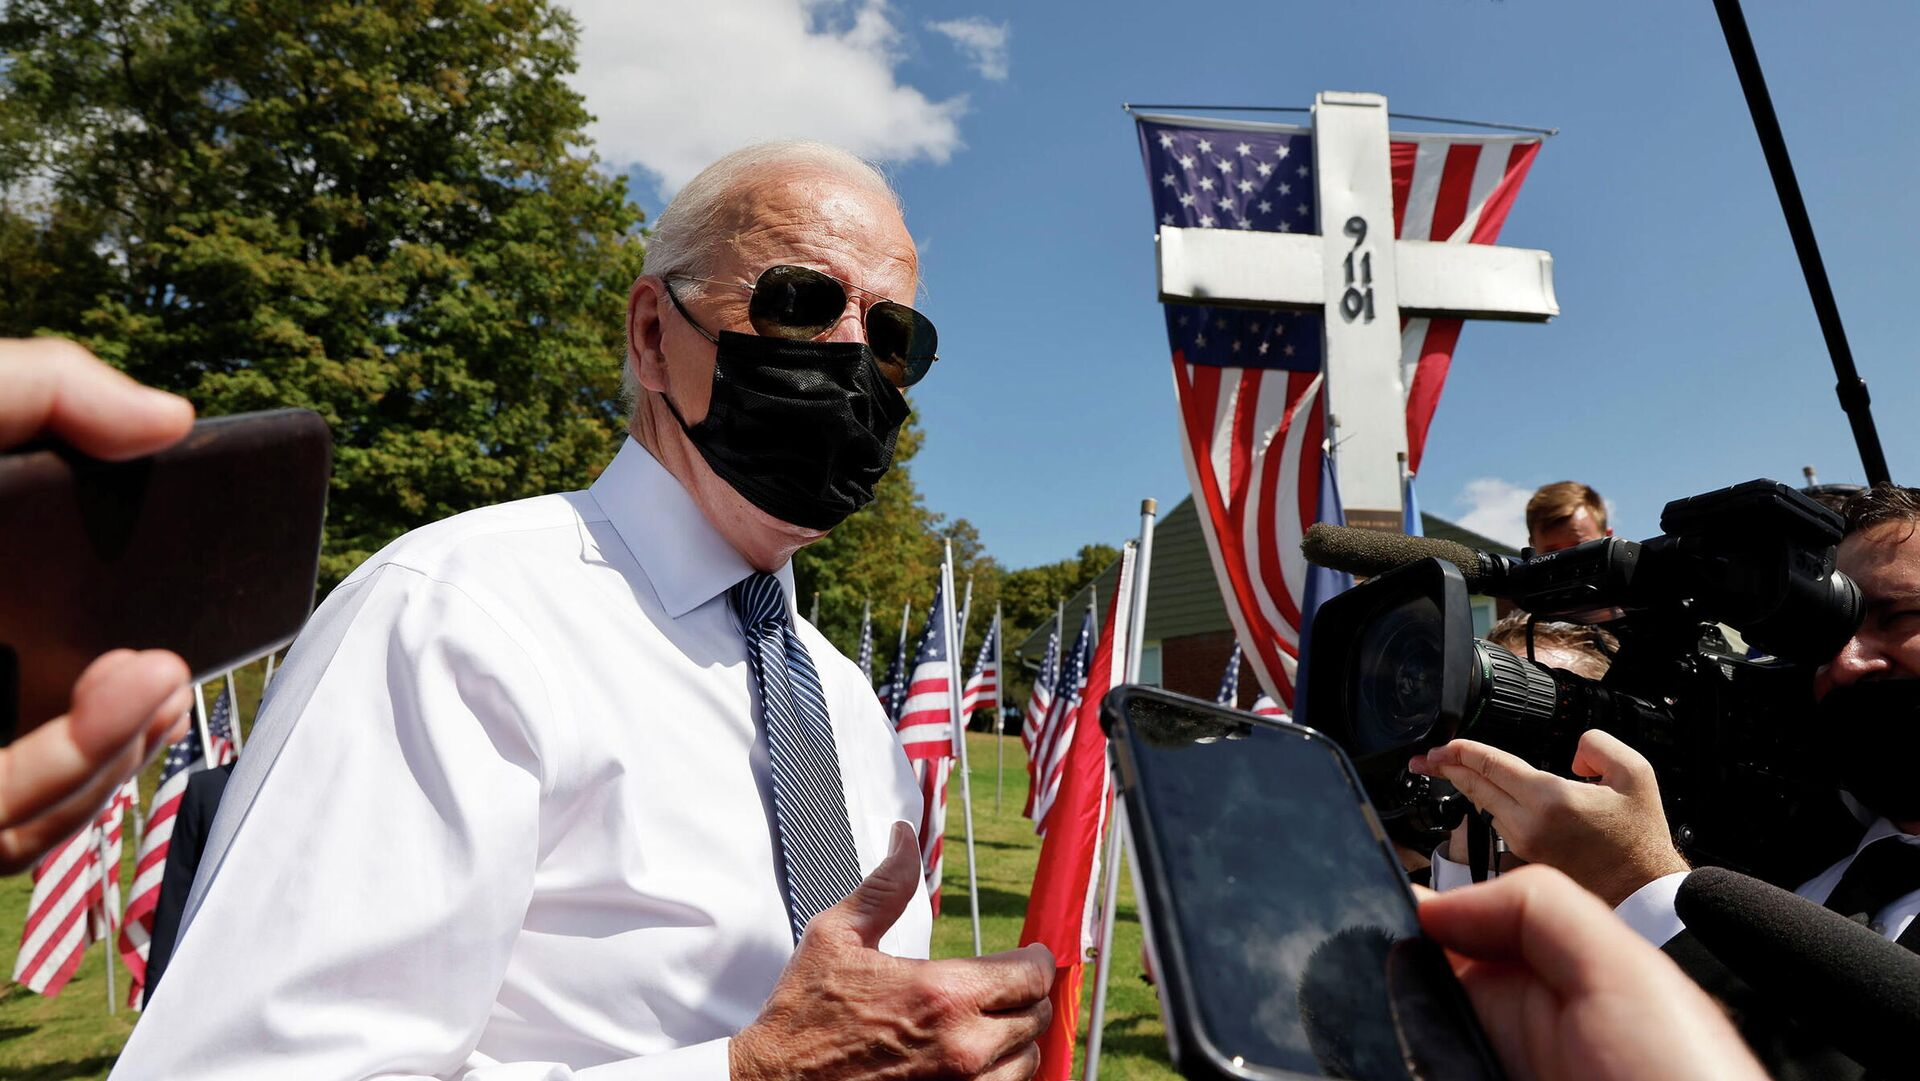 U.S. President Joe Biden talks with reporters outside the Shanksville volunteer fire station, as he and first lady Jill Biden stopped at the fire hall after visiting the nearby site where the hijacked United Airlines Flight 93 plane crashed on the 20th anniversary of the September 11, 2001 attacks, in Shanksville, Pennsylvania, U.S., September 11, 2021. - Sputnik International, 1920, 14.09.2021